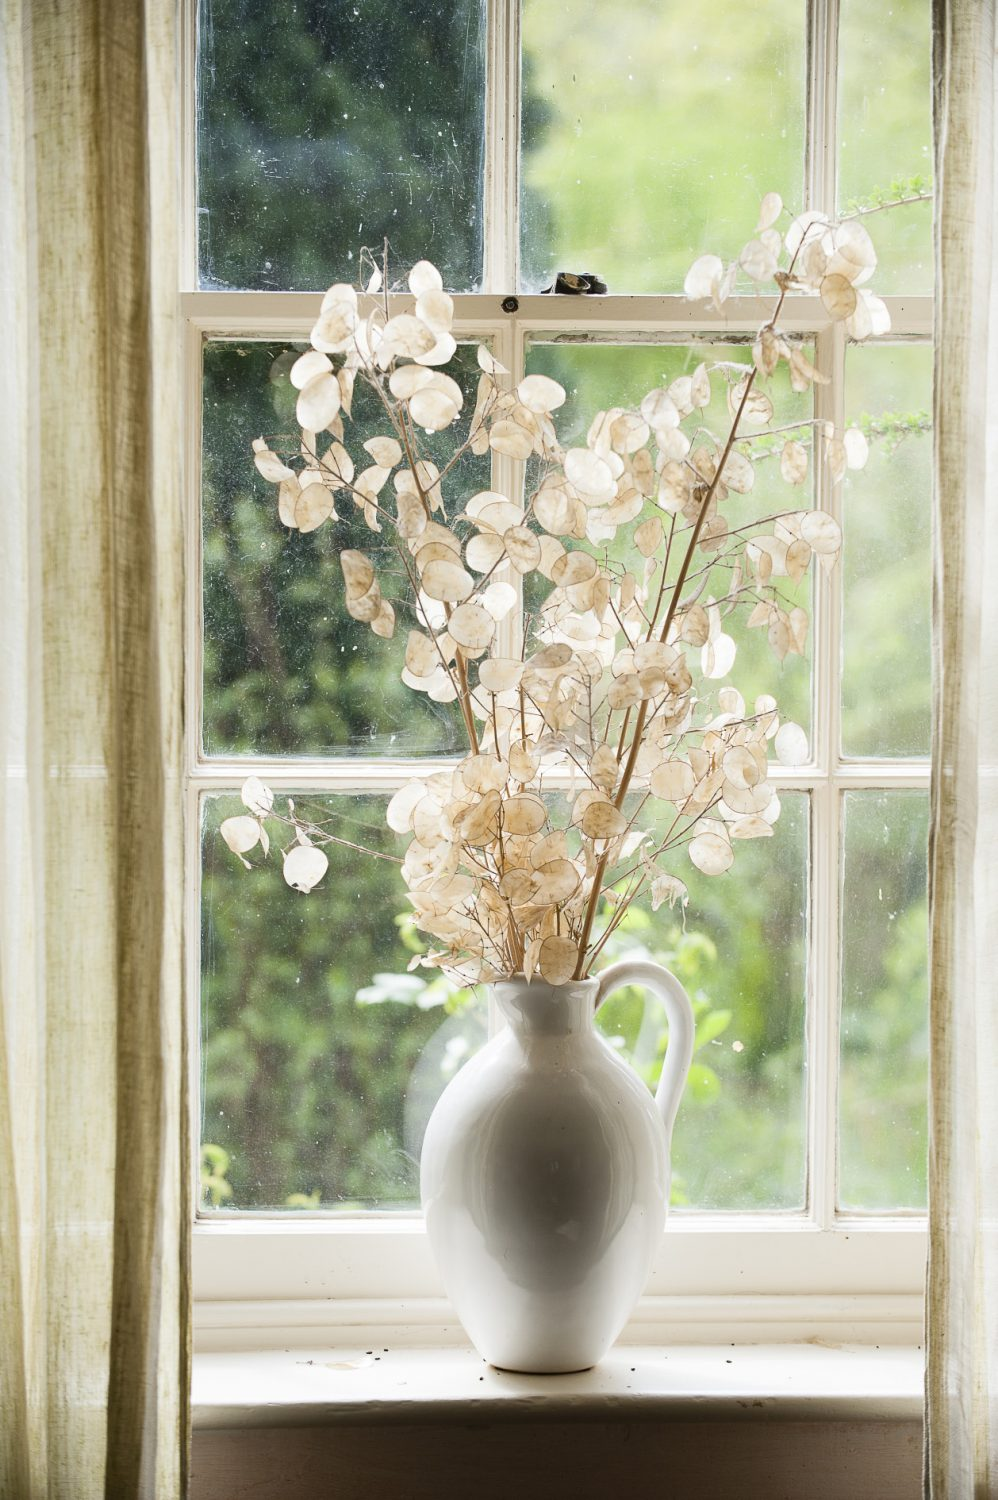 A jug of dried honesty catches the light beautifully on a windowsill